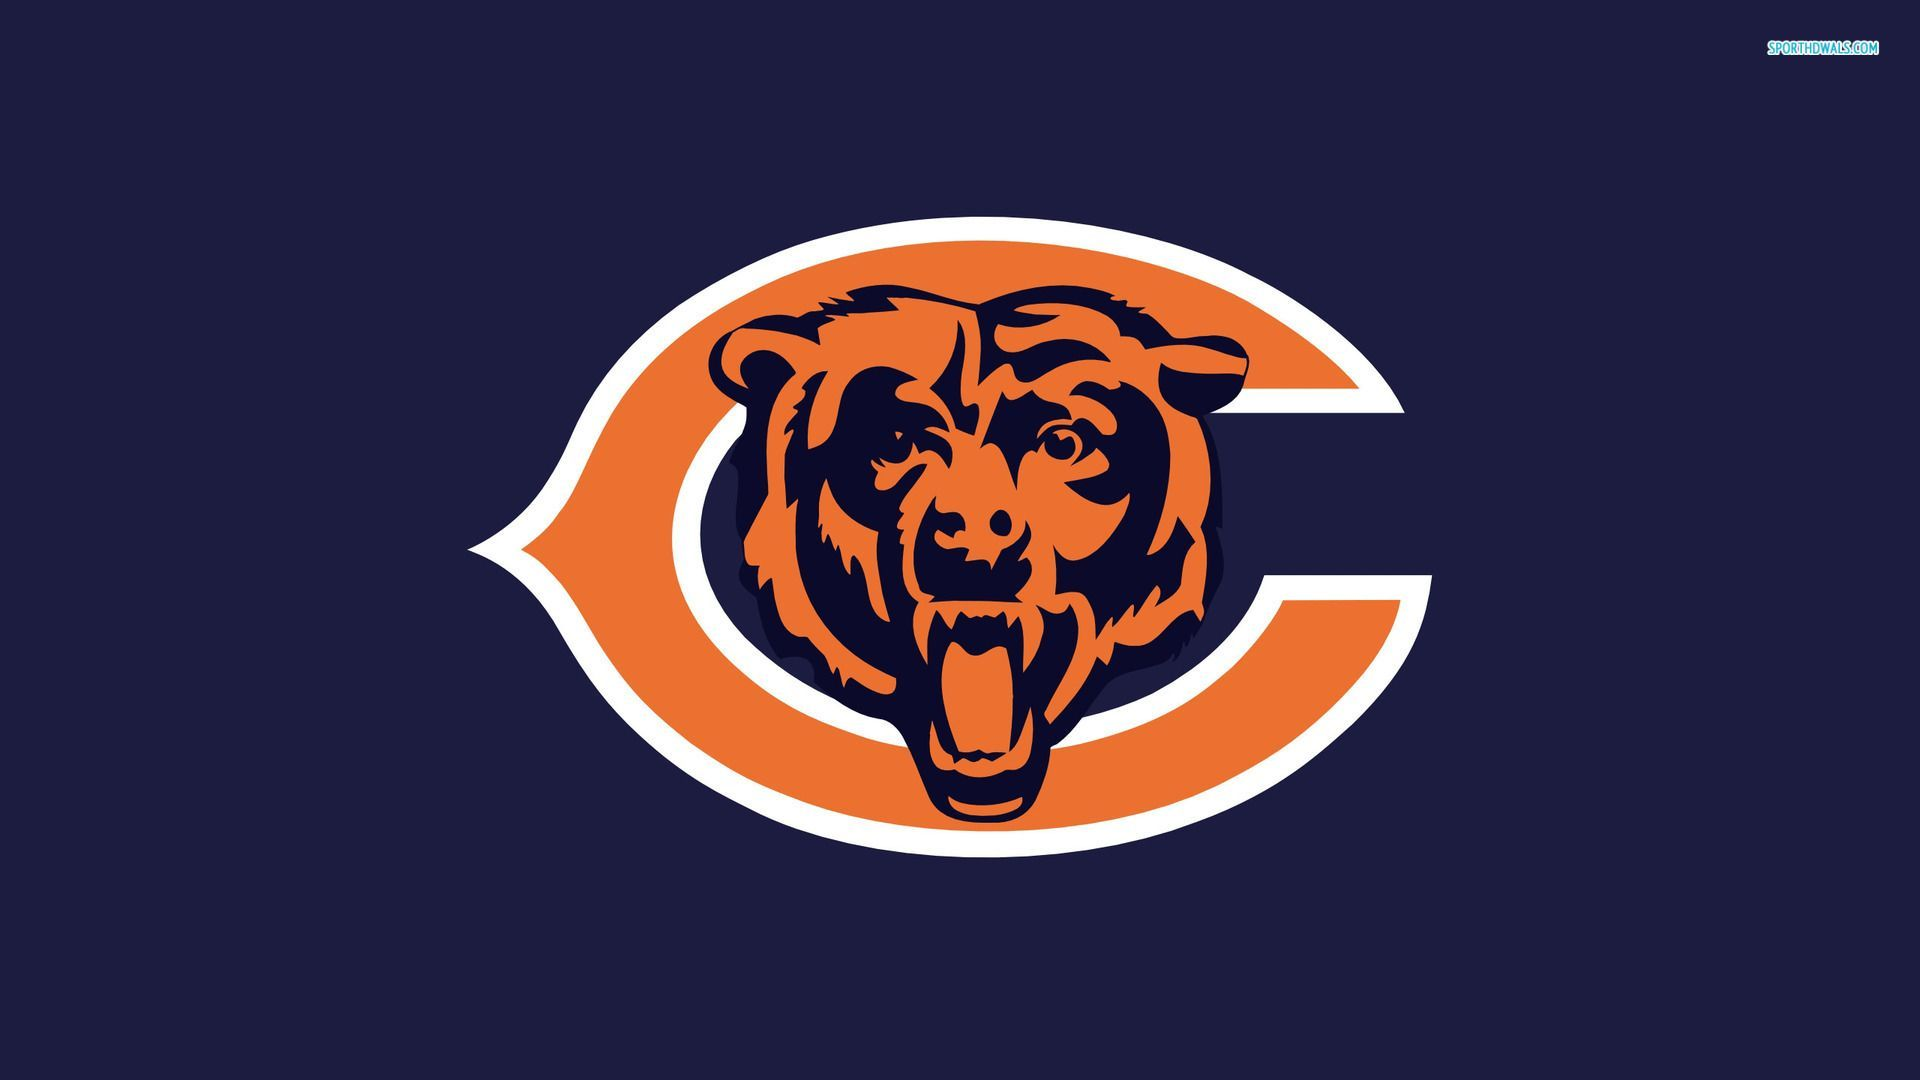 Chicago Bears Wallpapers 2015 Wallpaper Cave Bear Wallpaper Bear Pictures Chicago Bears Wallpaper